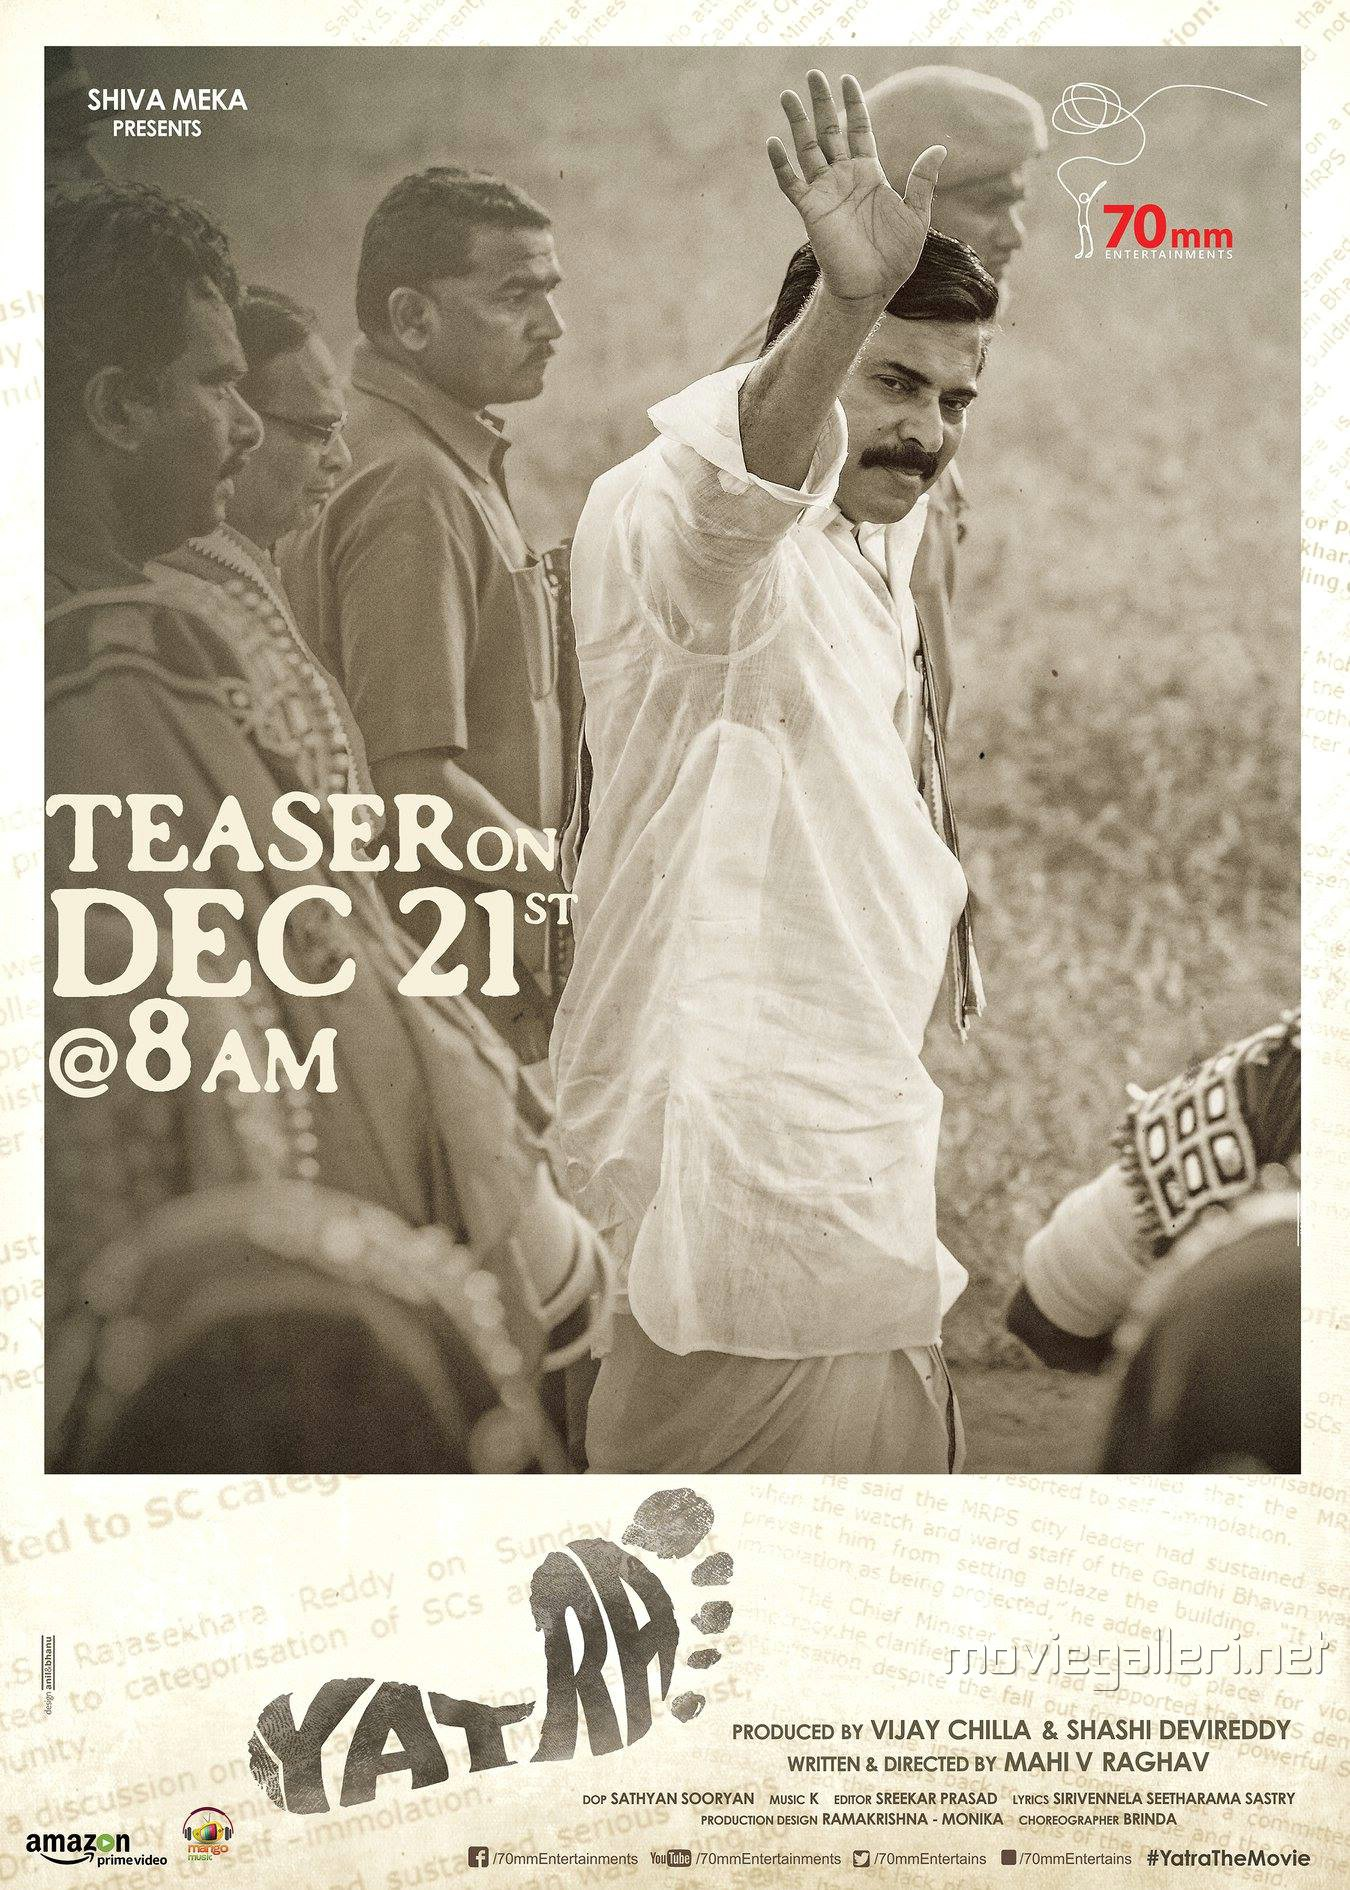 Mammootty Yatra teaser on December 21st Posters HD